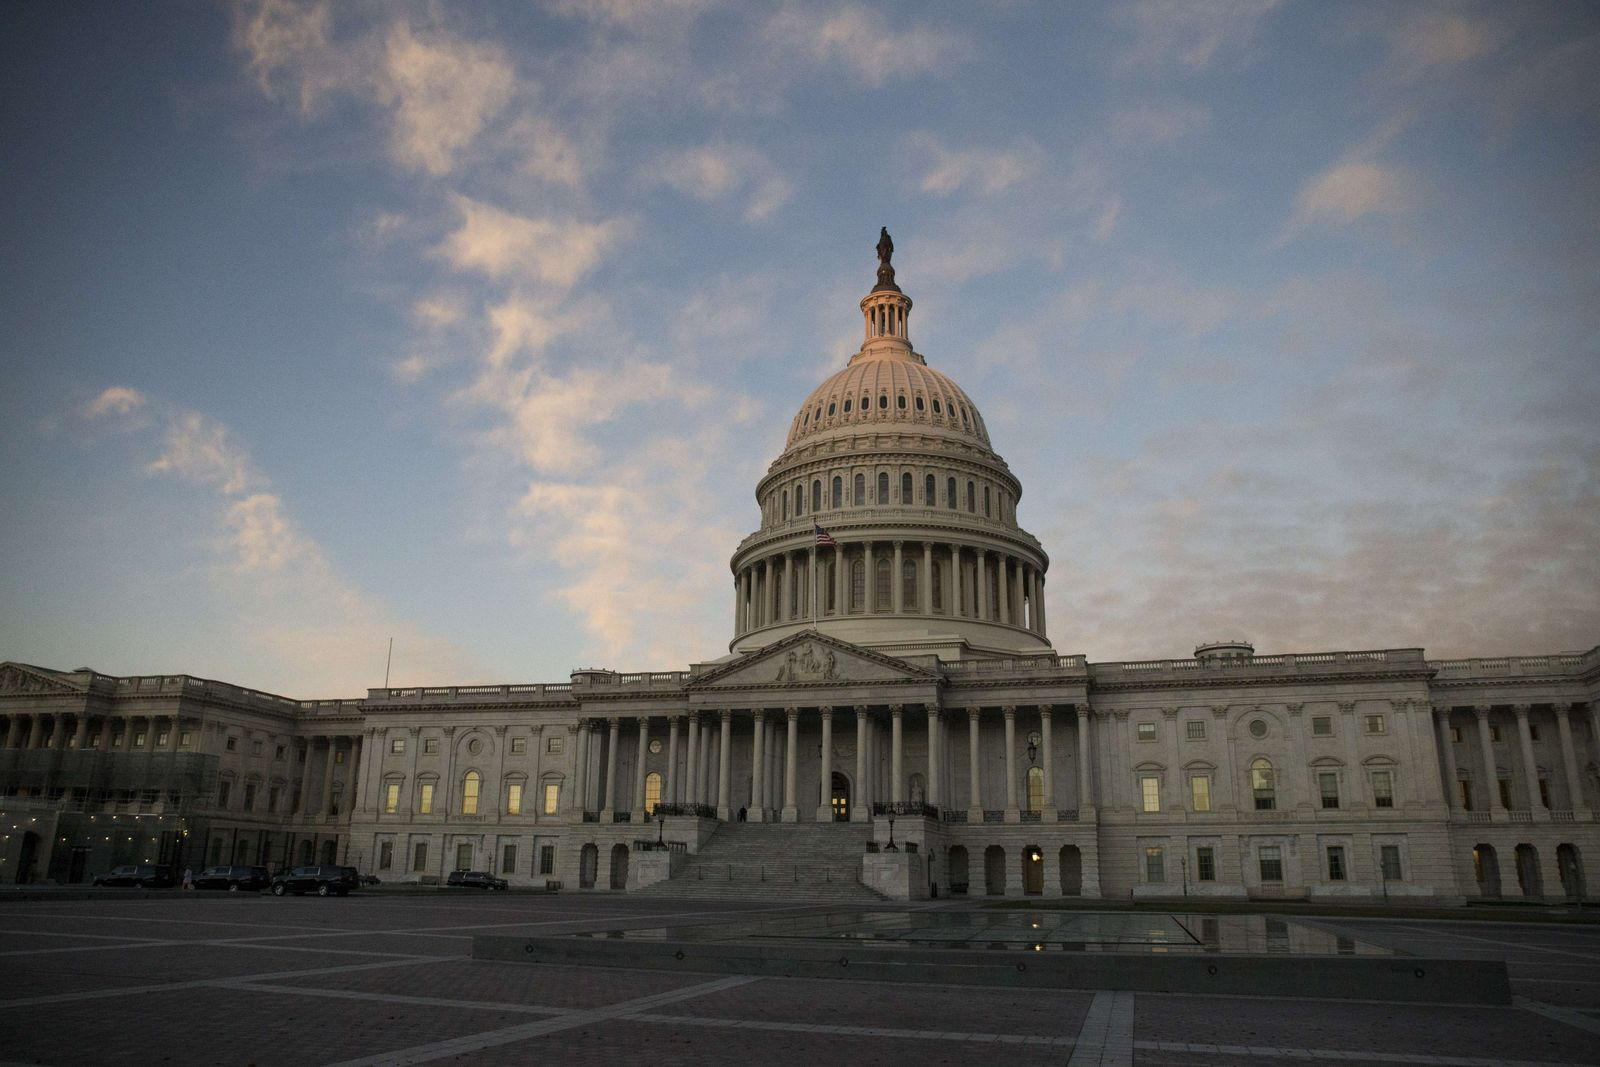 Democrats Take Control Of House, And Republicans Keep Majority In Senate In Midterm Elections